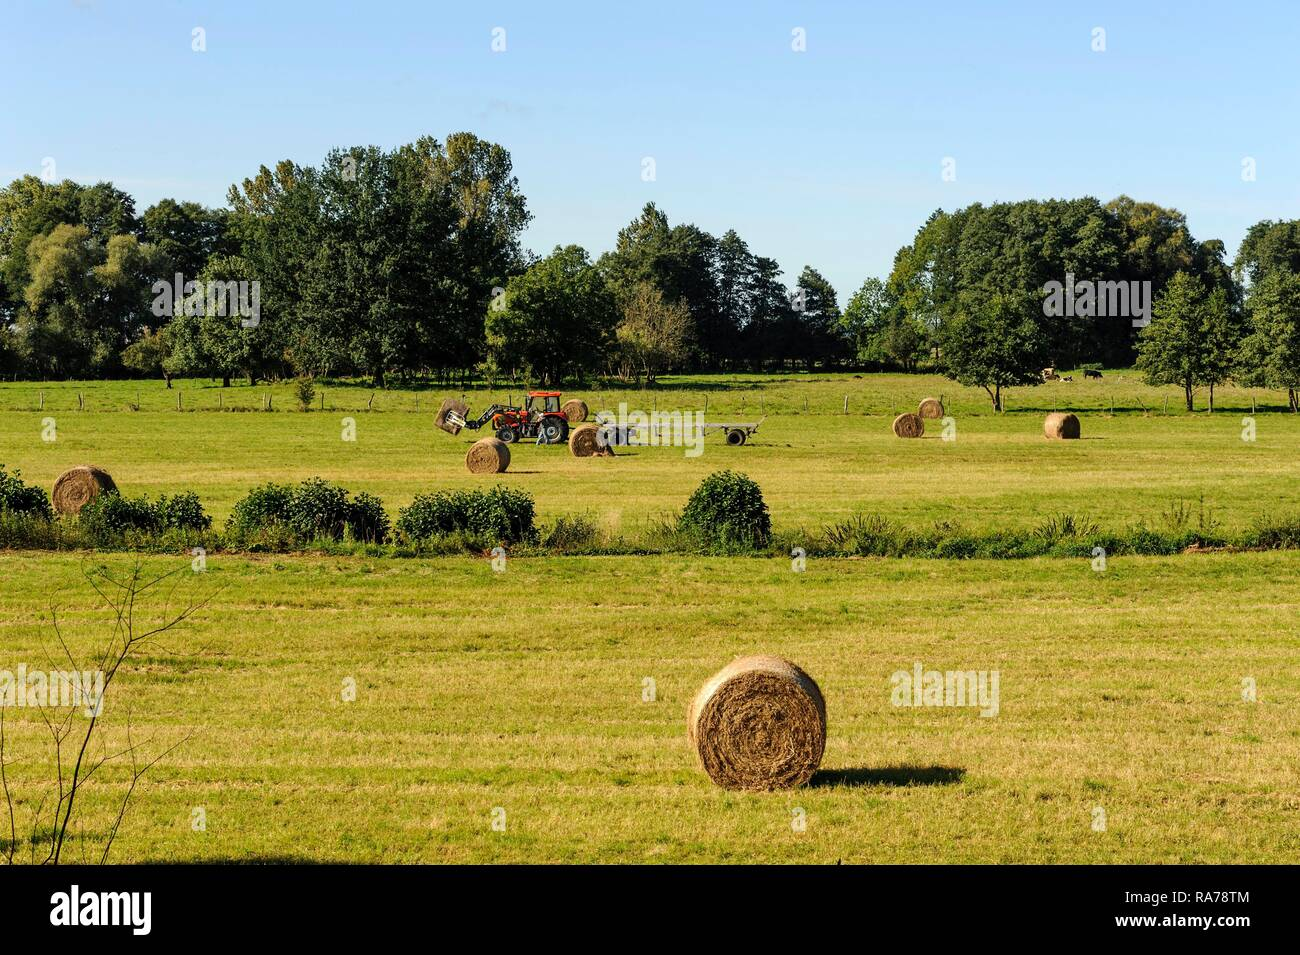 Pastureland in the Warta River Mouth National Park, Park Narodowy Ujście Warty, Lubusz voivodeship, Poland, Europe - Stock Image